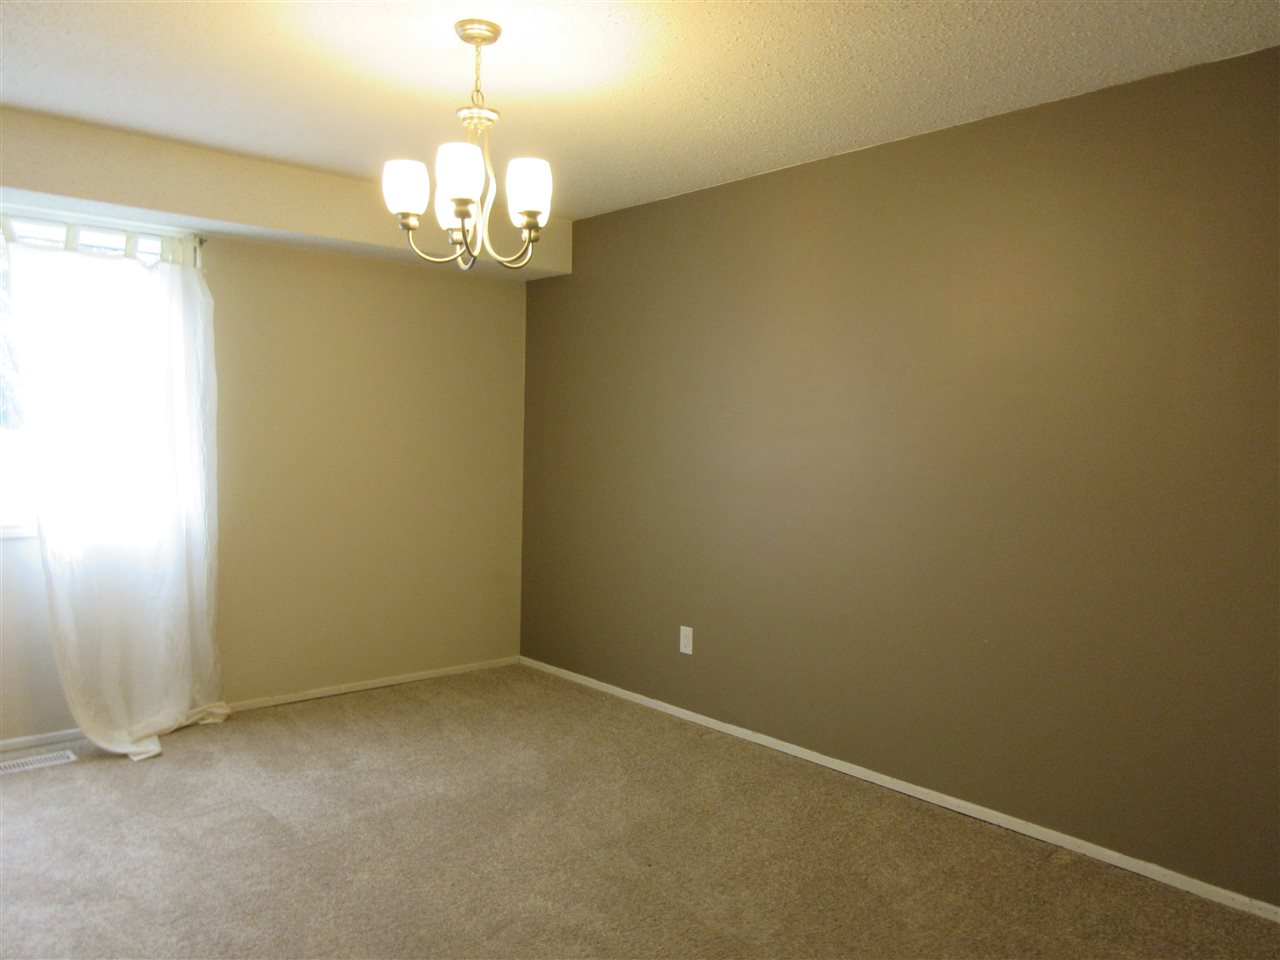 Photo 14: 103 51 AKINS Drive: St. Albert Condo for sale : MLS® # E4060963